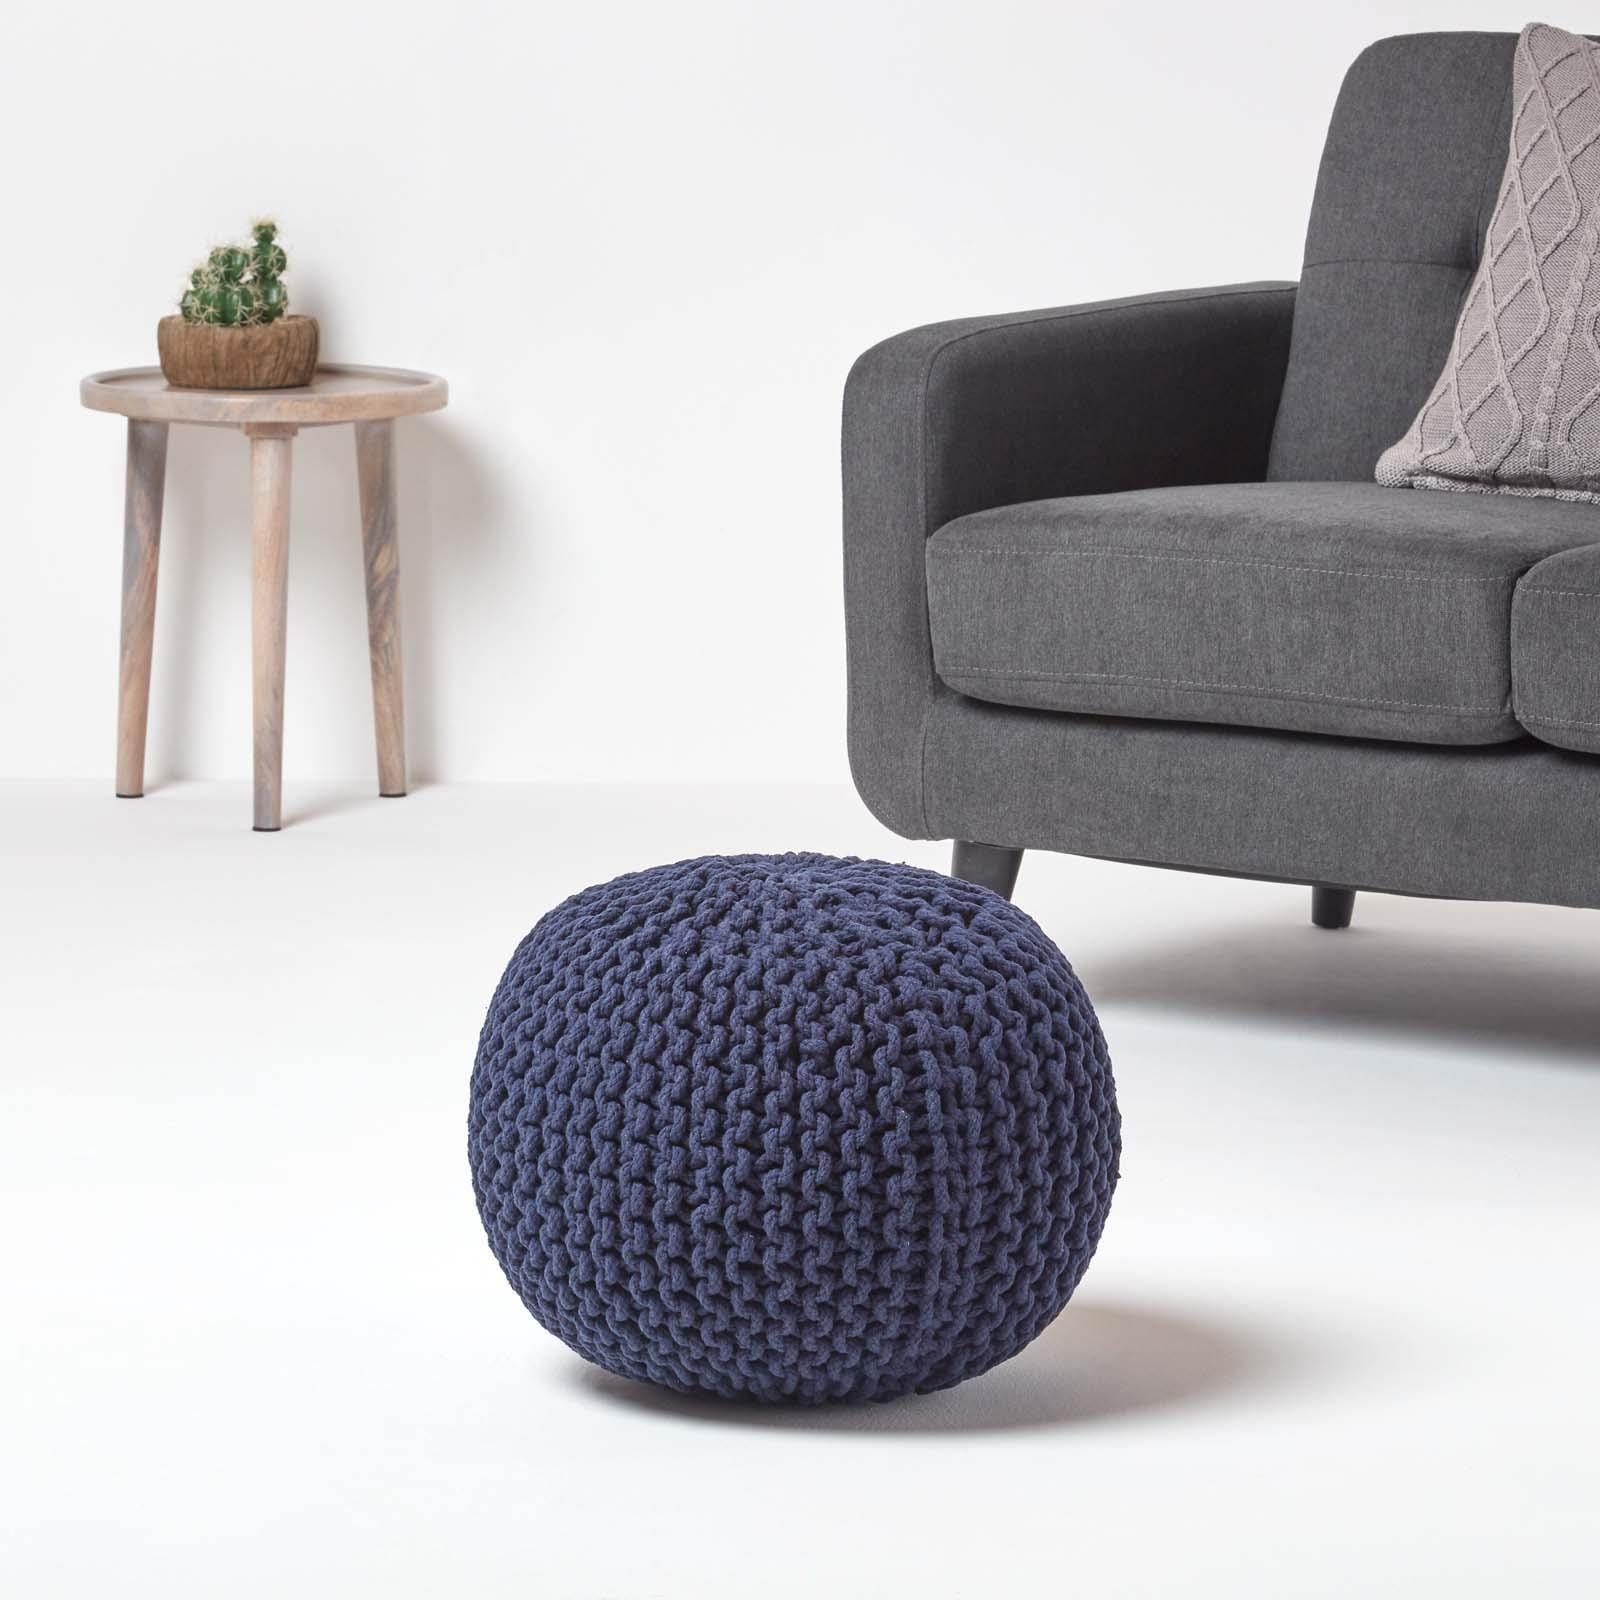 Hand-Knitted-100-Cotton-Pouffes-Round-Sphere-Or-Cube-Square-Chunky-Footstools thumbnail 105